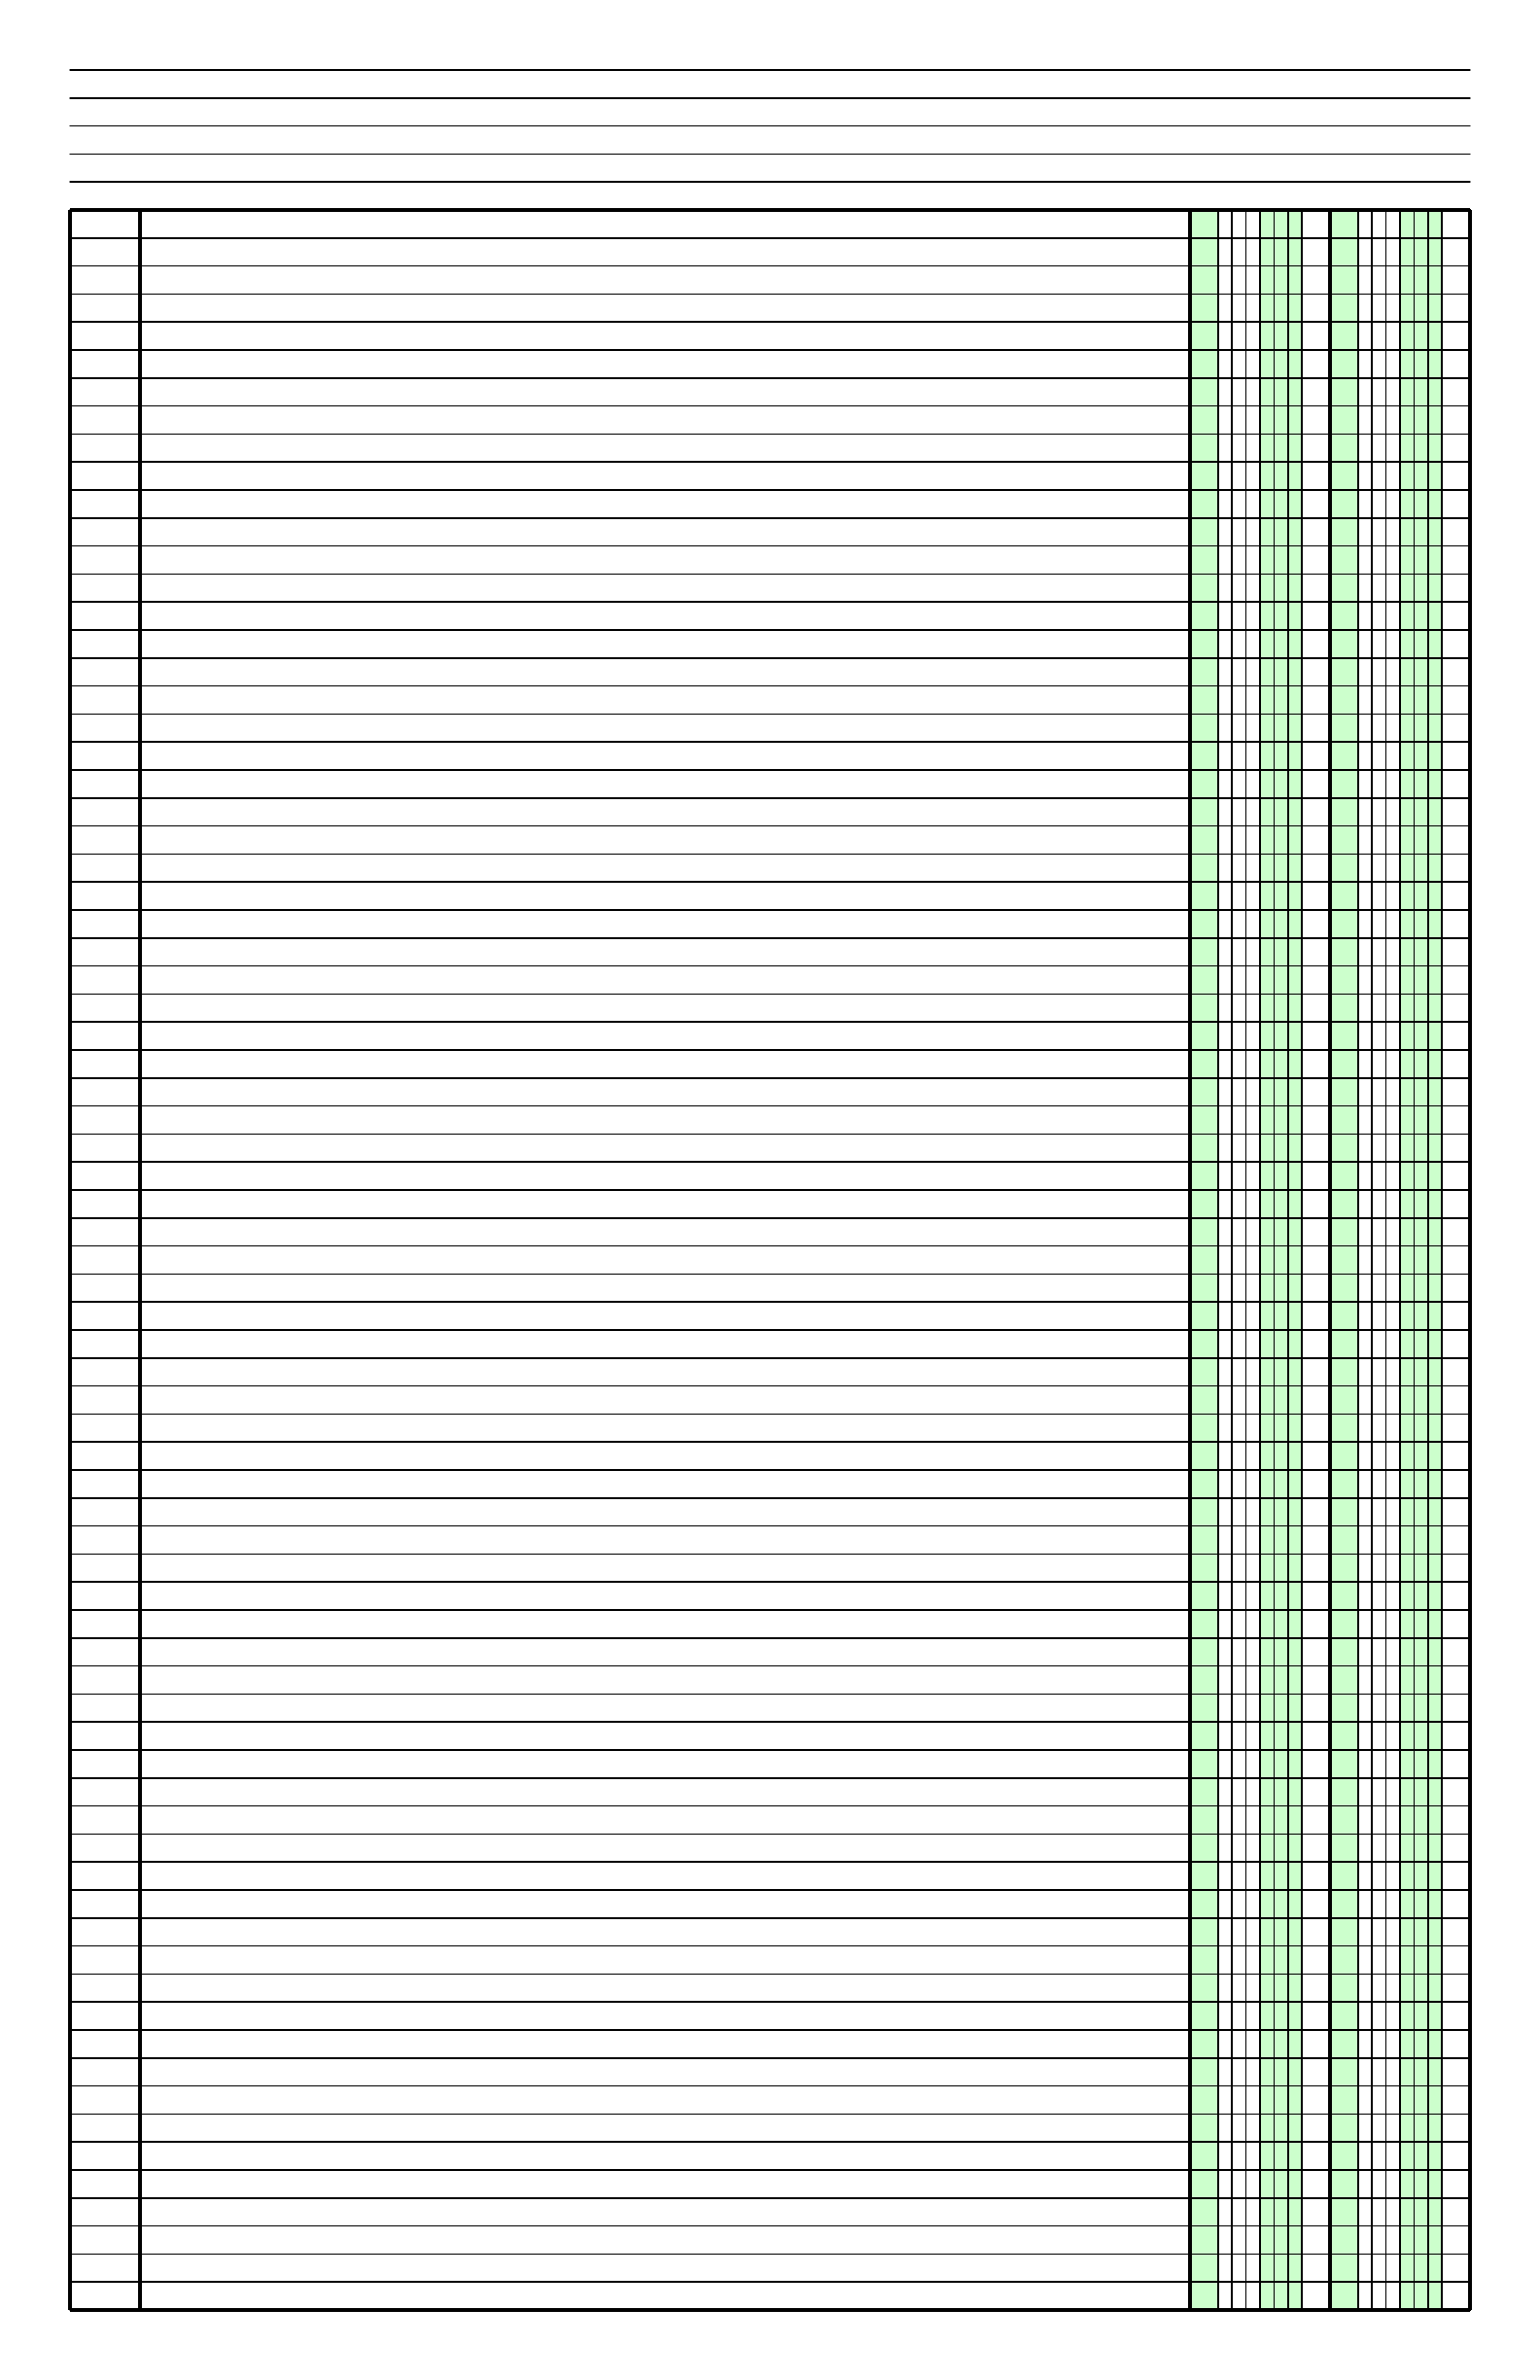 Columnar Paper With Two Columns On Ledger Sized Paper In